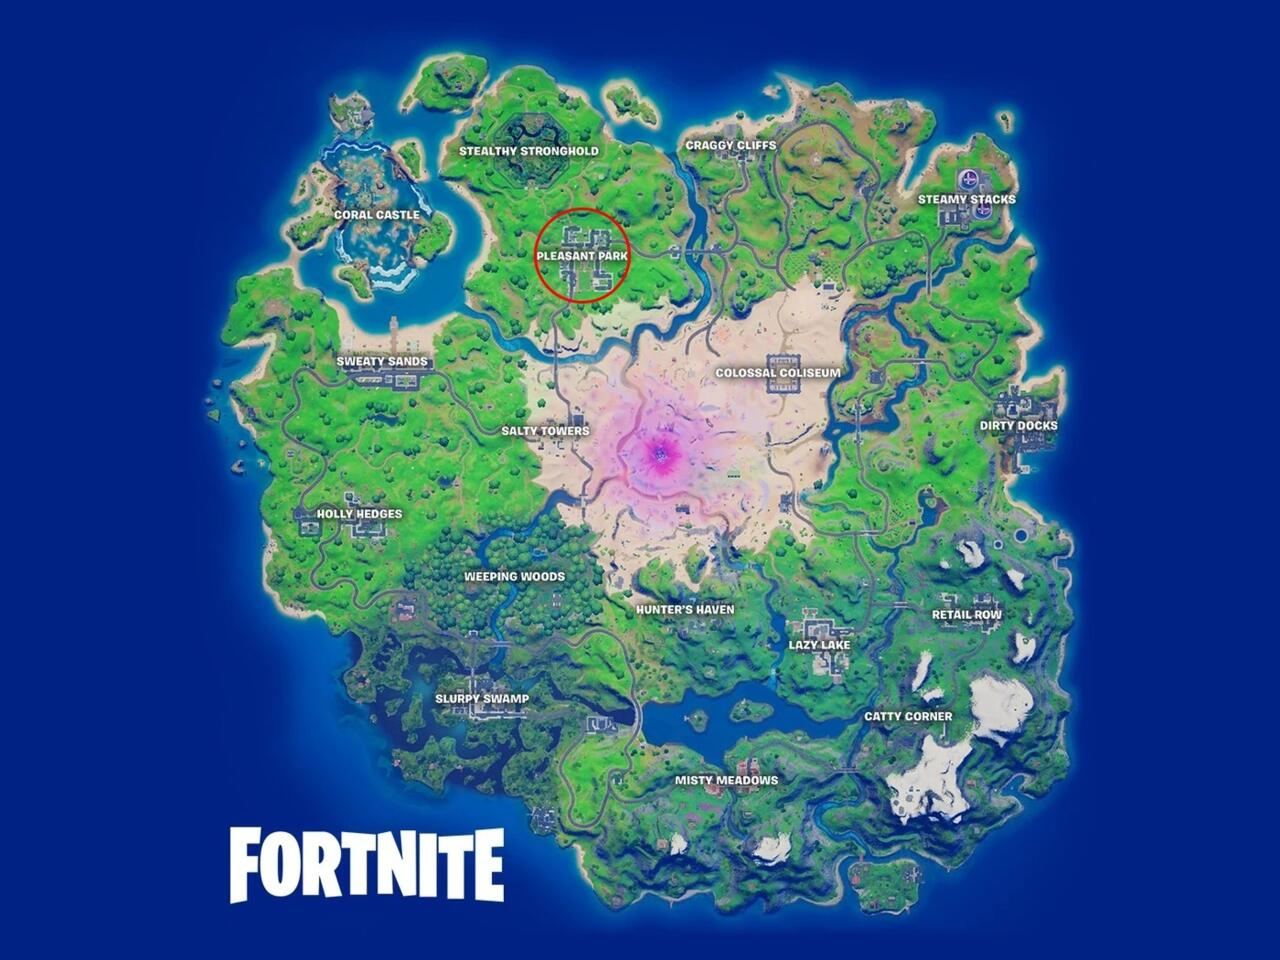 Where to find Pleasant Park in Fortnite.